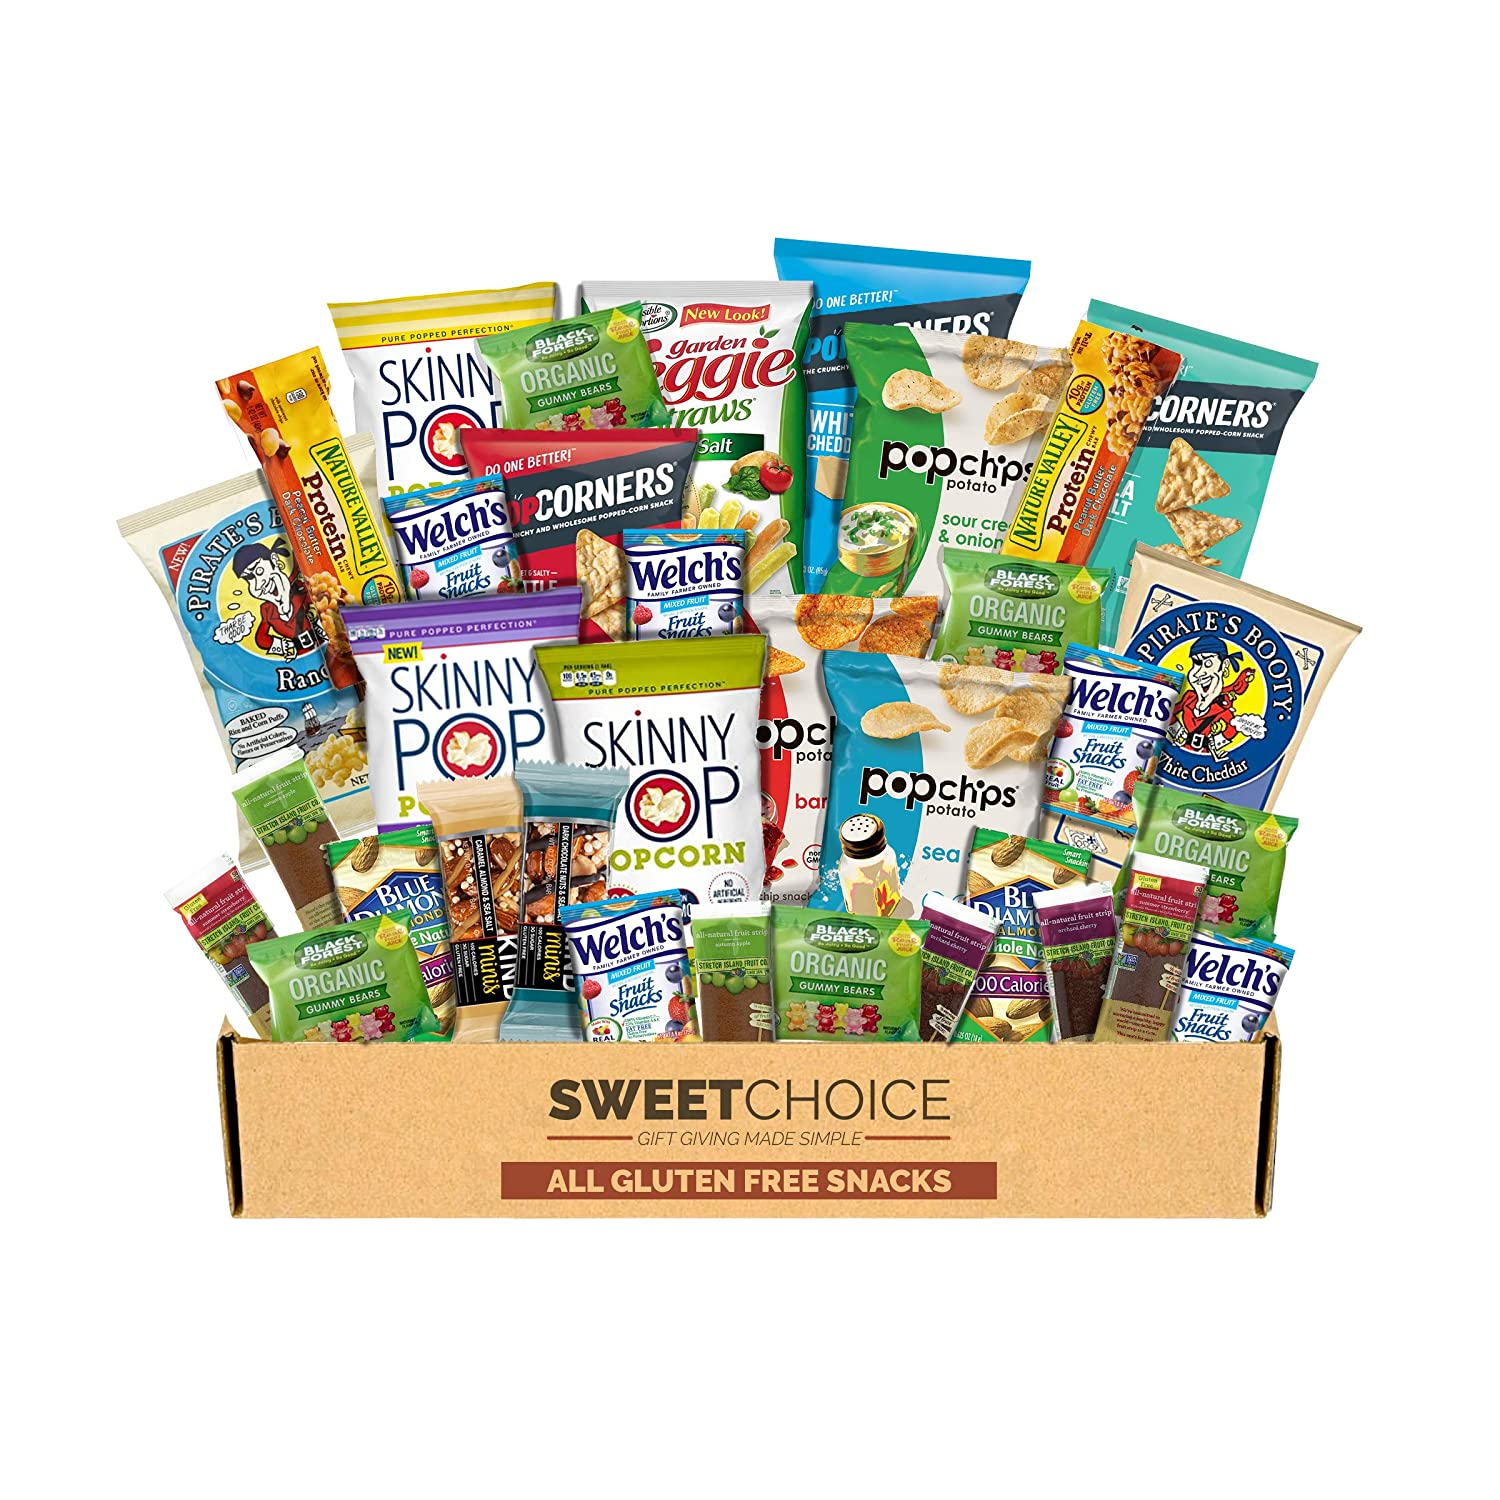 Snack Box Gluten Free Healthy Snacks Care Package (34 Count) for College Students, Exams, Father's Day, Military, Finals, Office and Gift Ideas. Chips, Popcorn, and granola Bars.